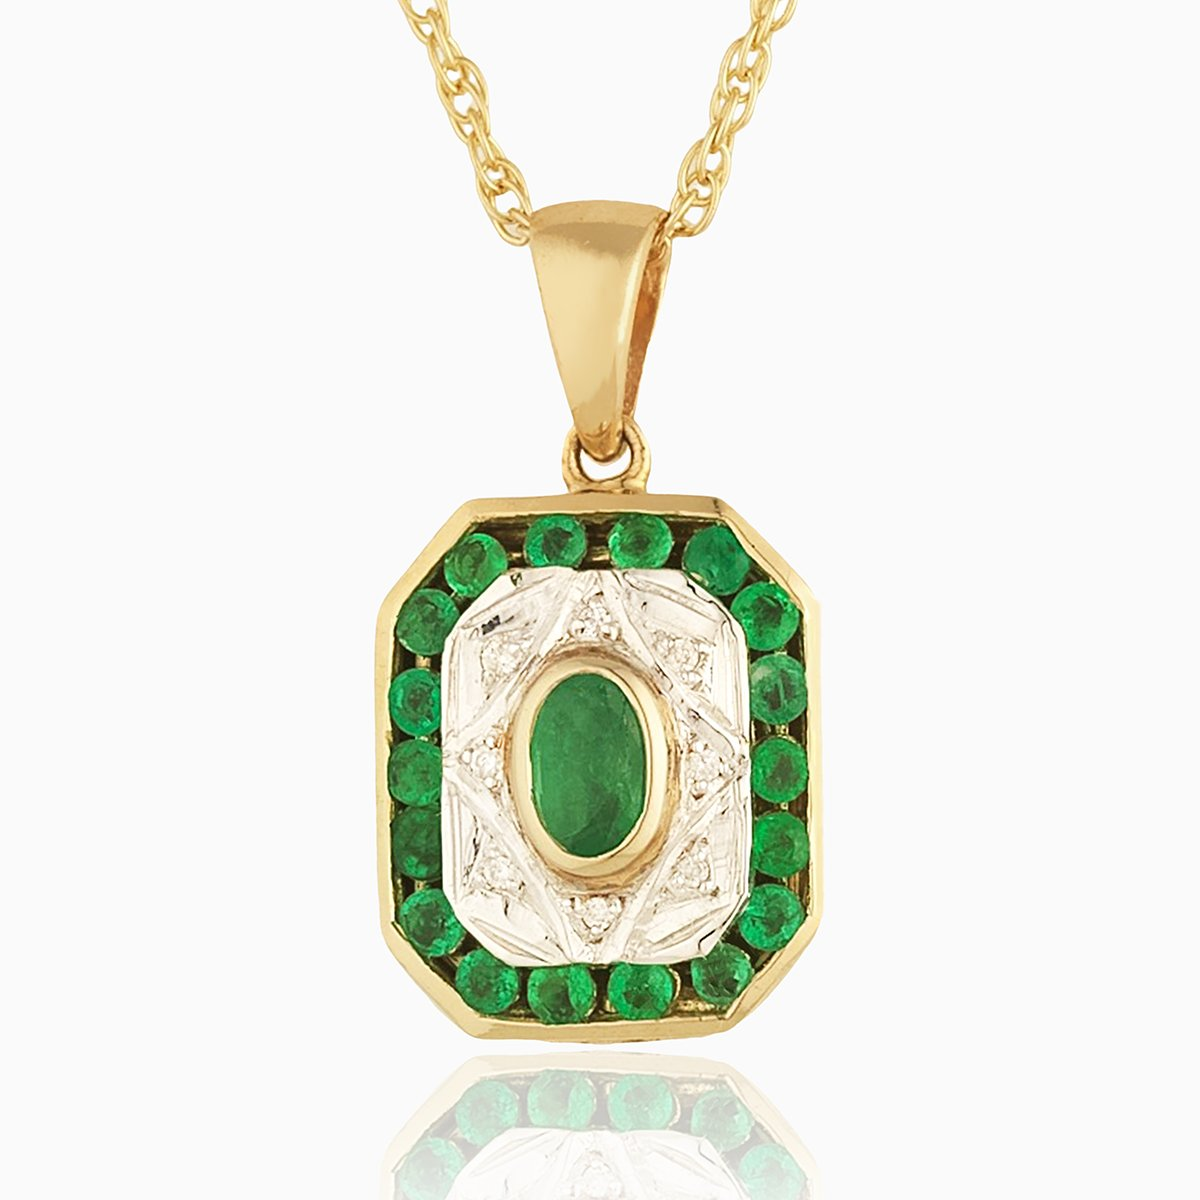 Product title: Emerald and Diamond Art Deco Locket, product type: Locket